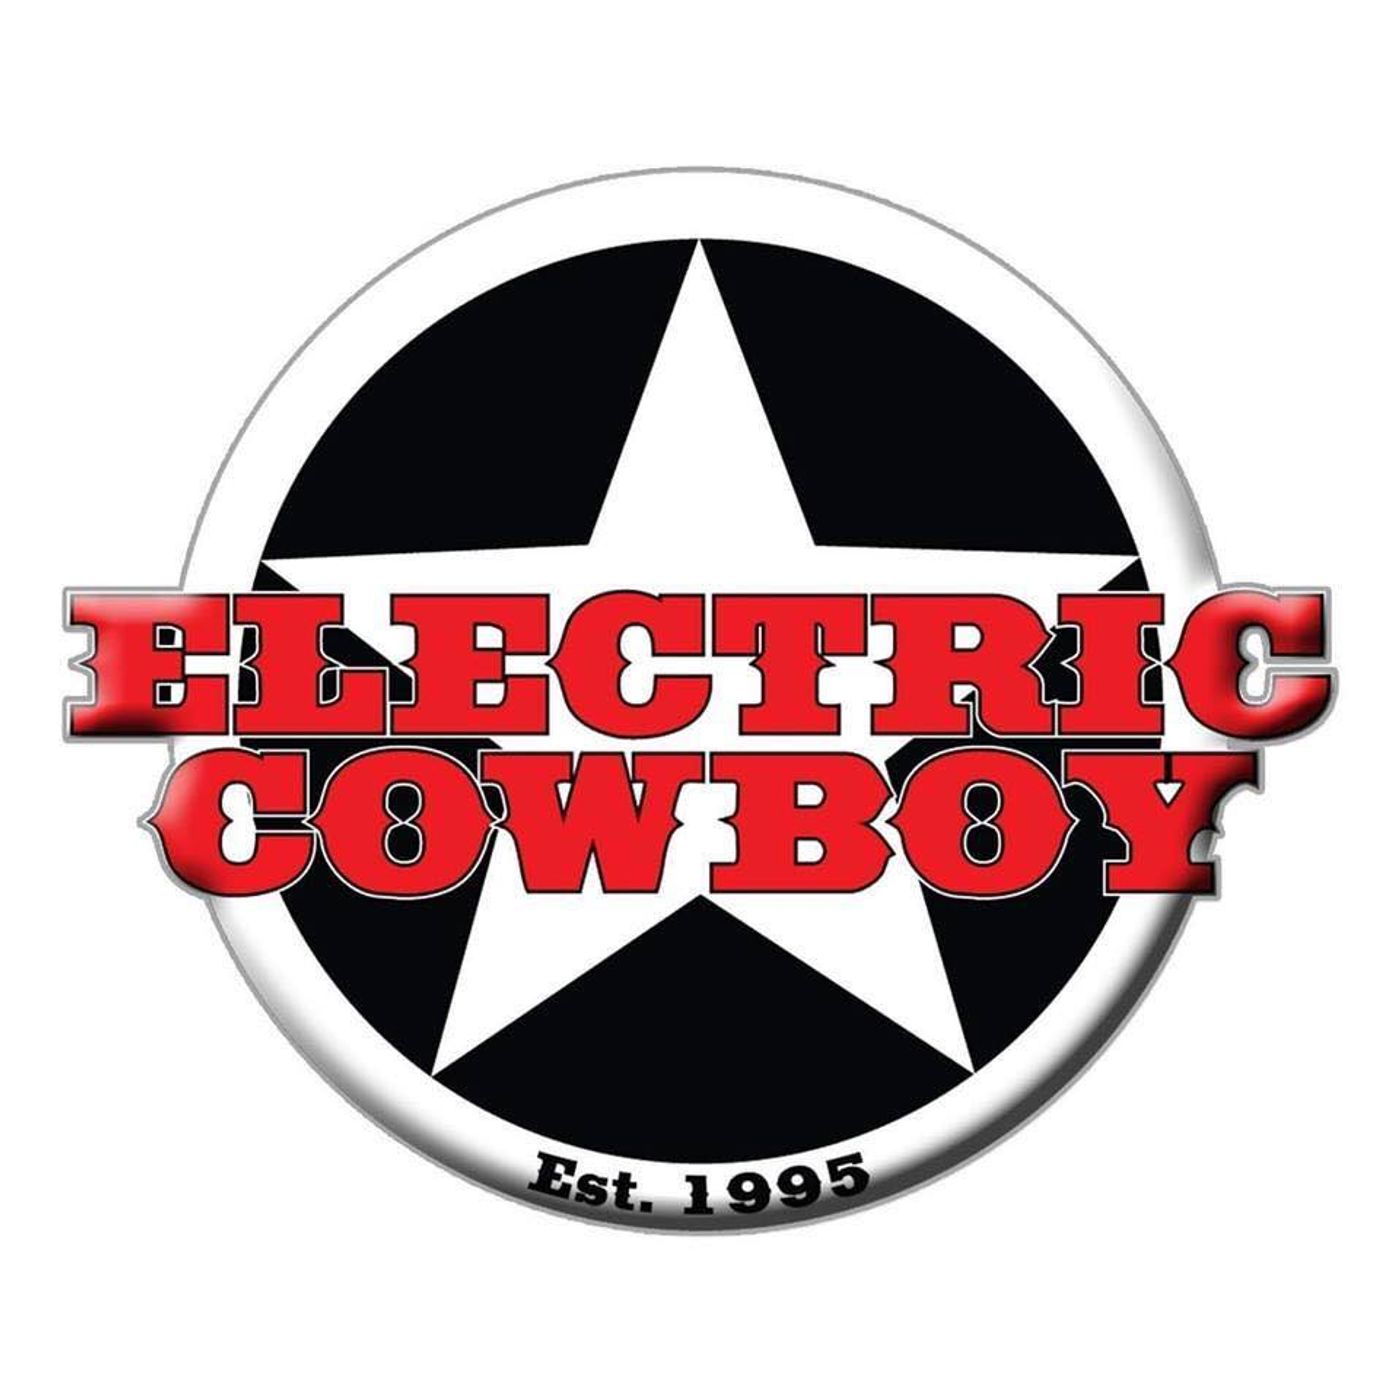 Electric Cowboy Encouraging Large Groups At Club